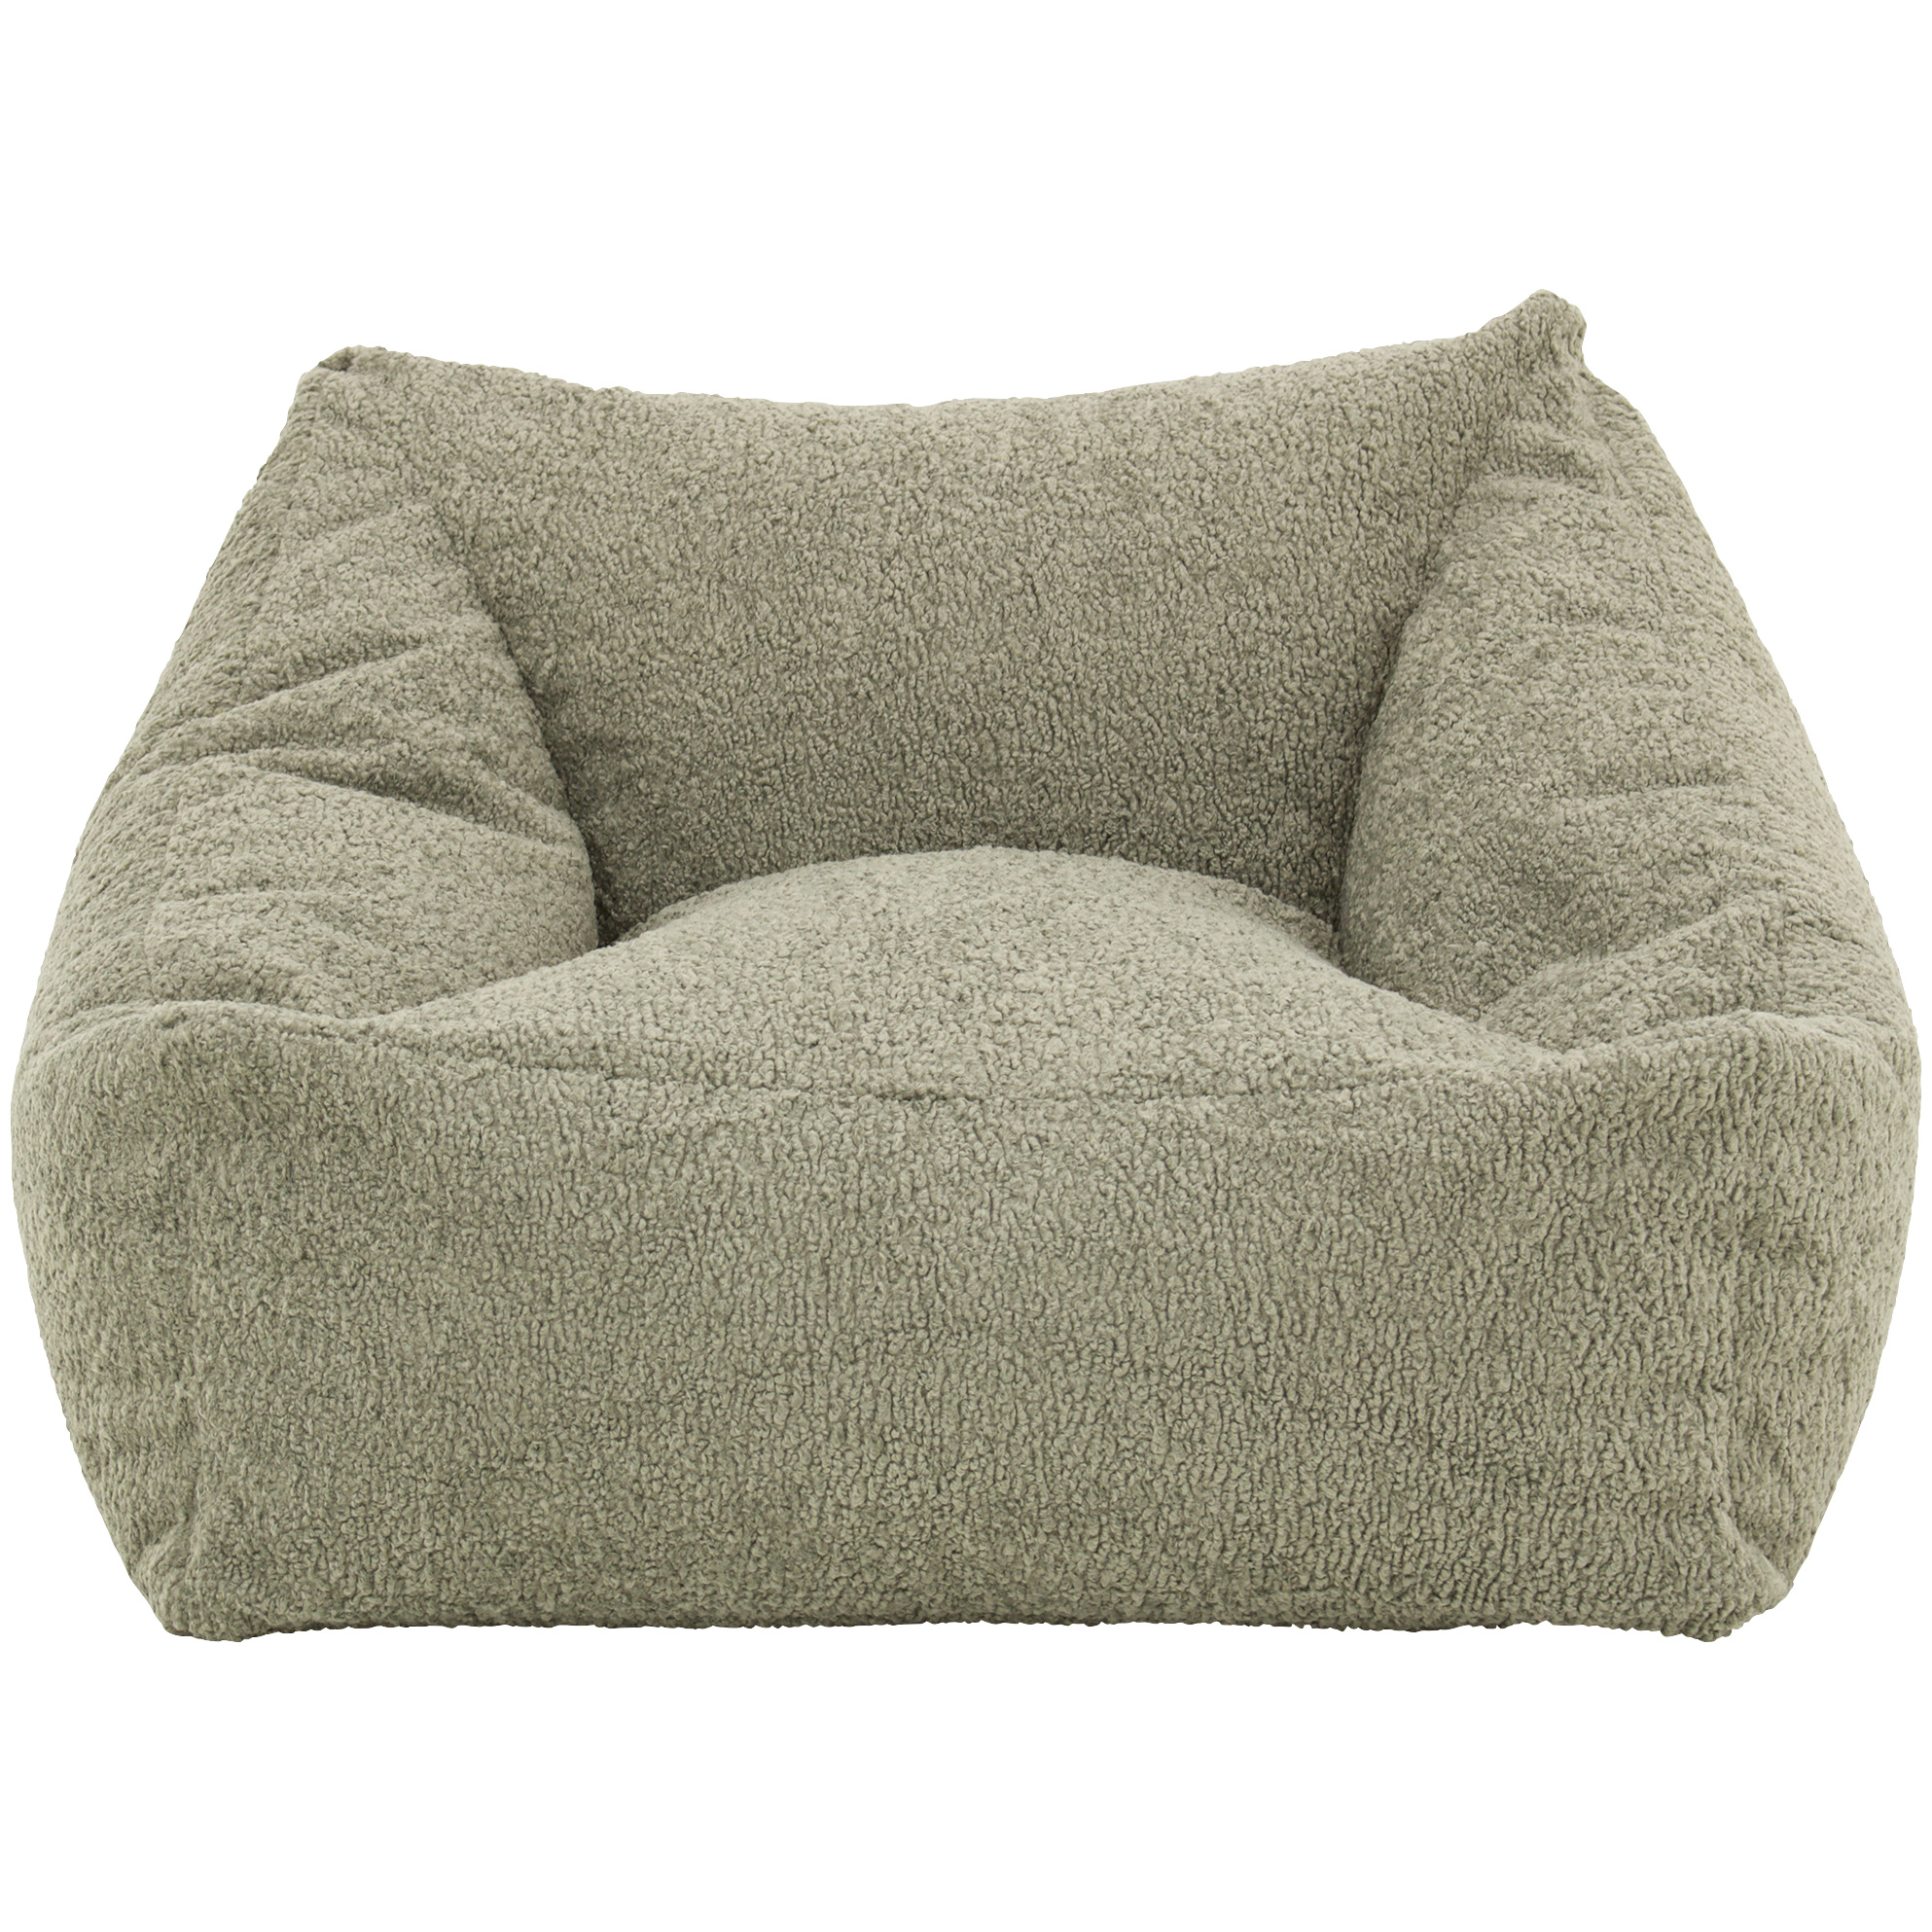 Overman | Cooper Natural Bean Bag Chair